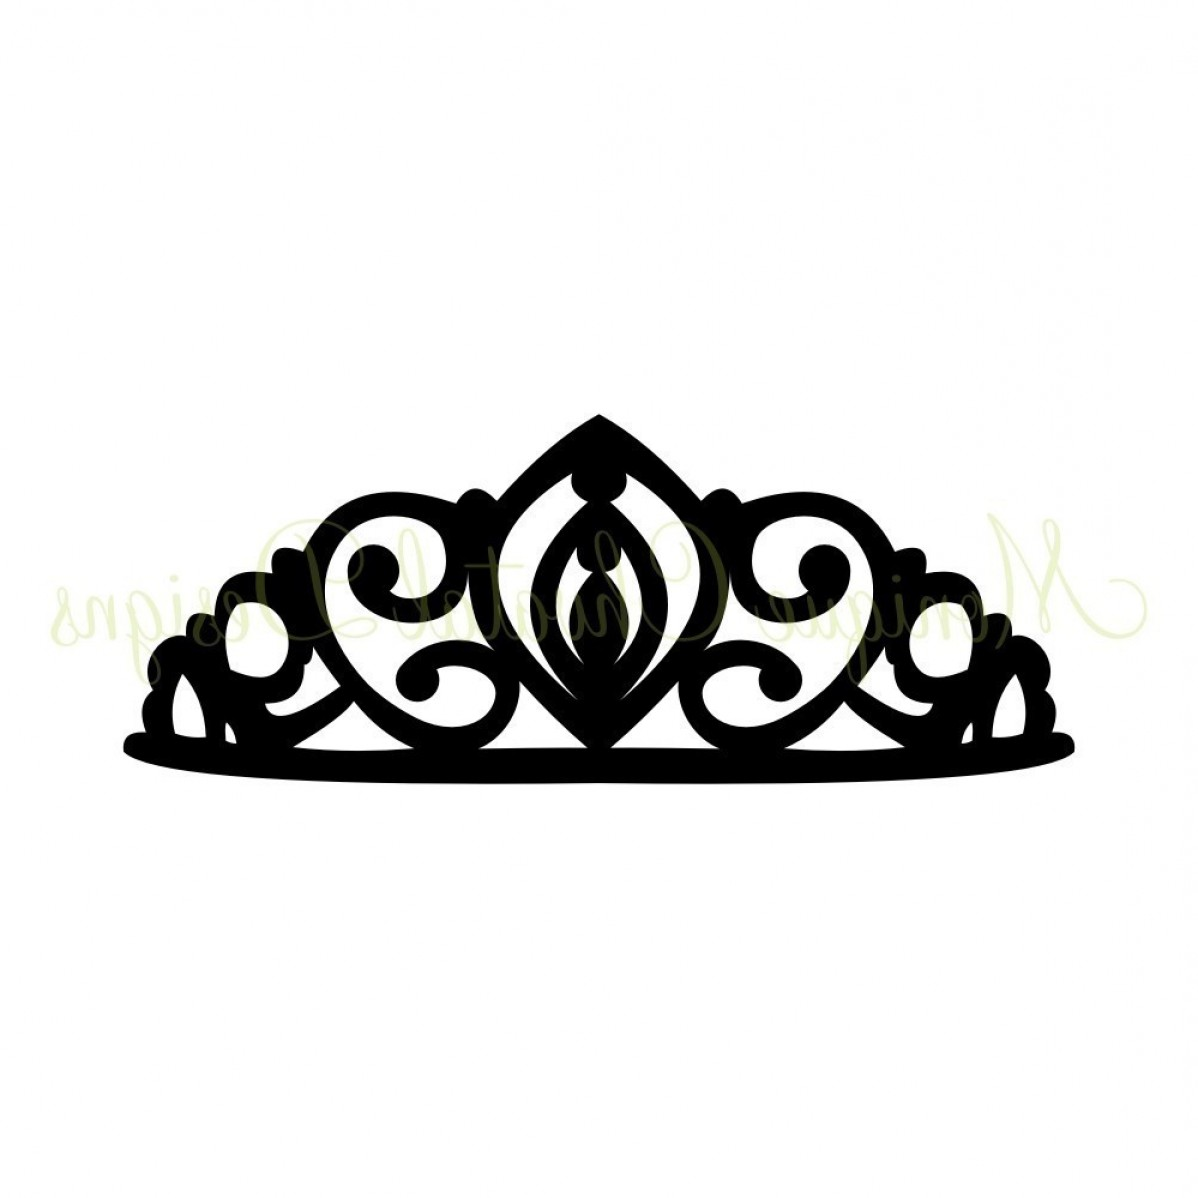 King And Queen Crowns Together Clipart